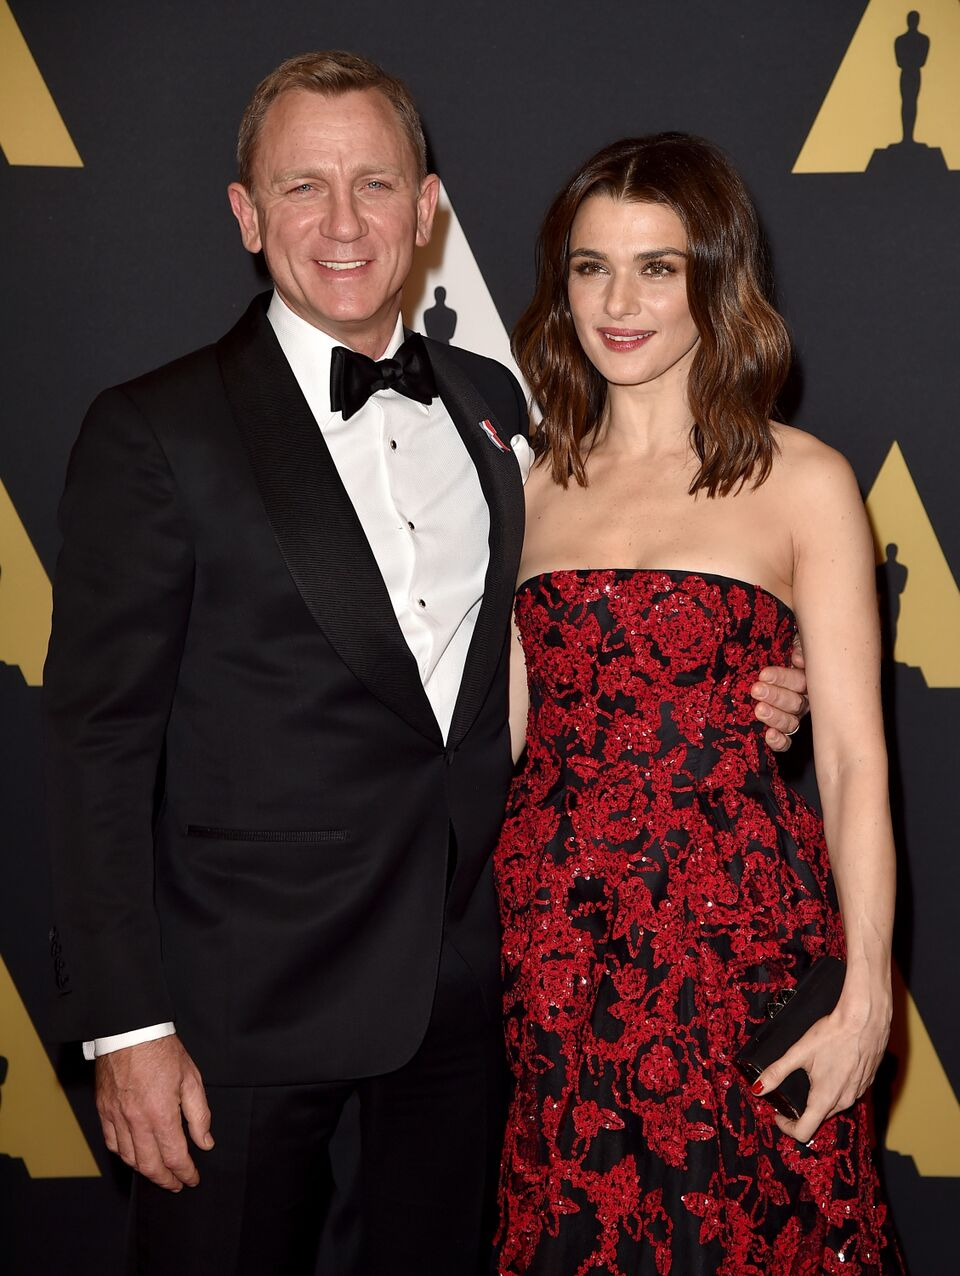 Daniel Craig and Rachel Weisz attend the Academy of Motion Picture Arts and Sciences' 7th annual Governors Awards. | Source: Getty Images